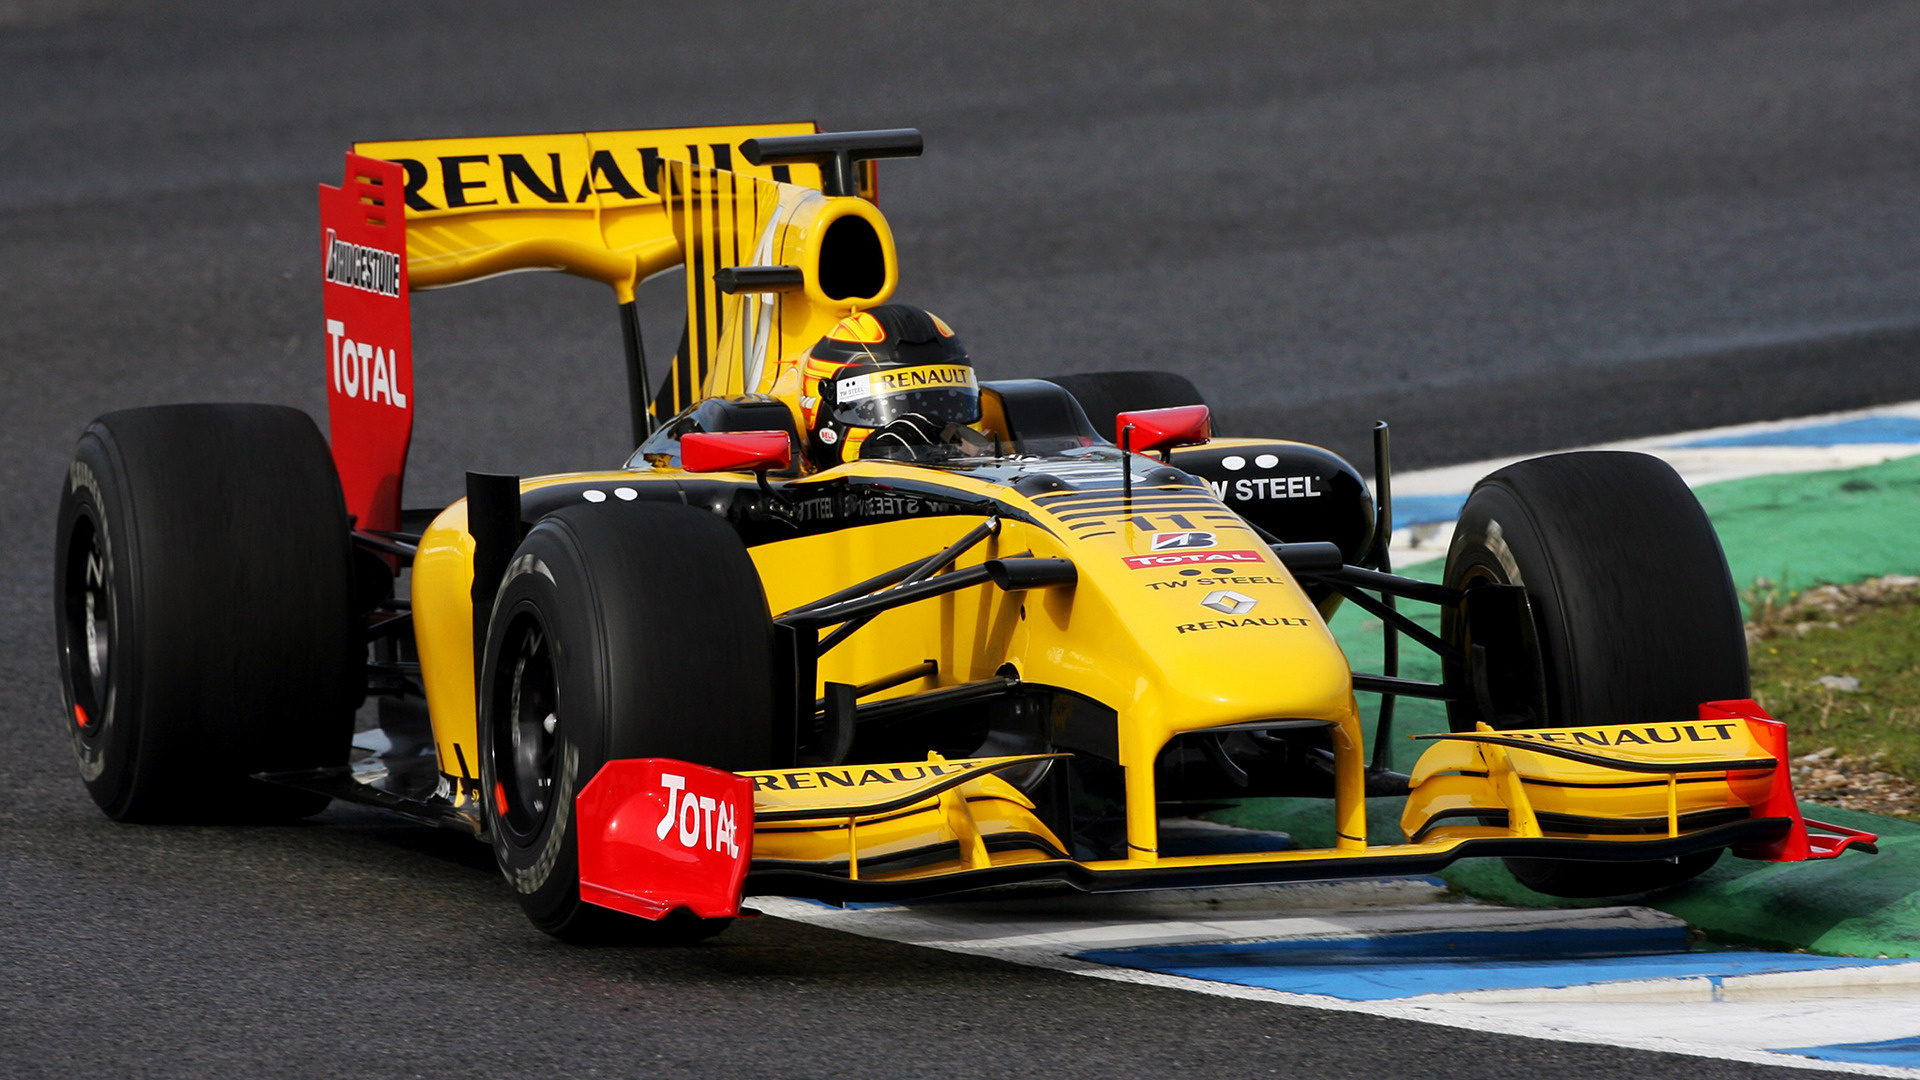 renault r30 f1 wallpaper 2010 3 epic wallpapers Car Pictures 1920x1080